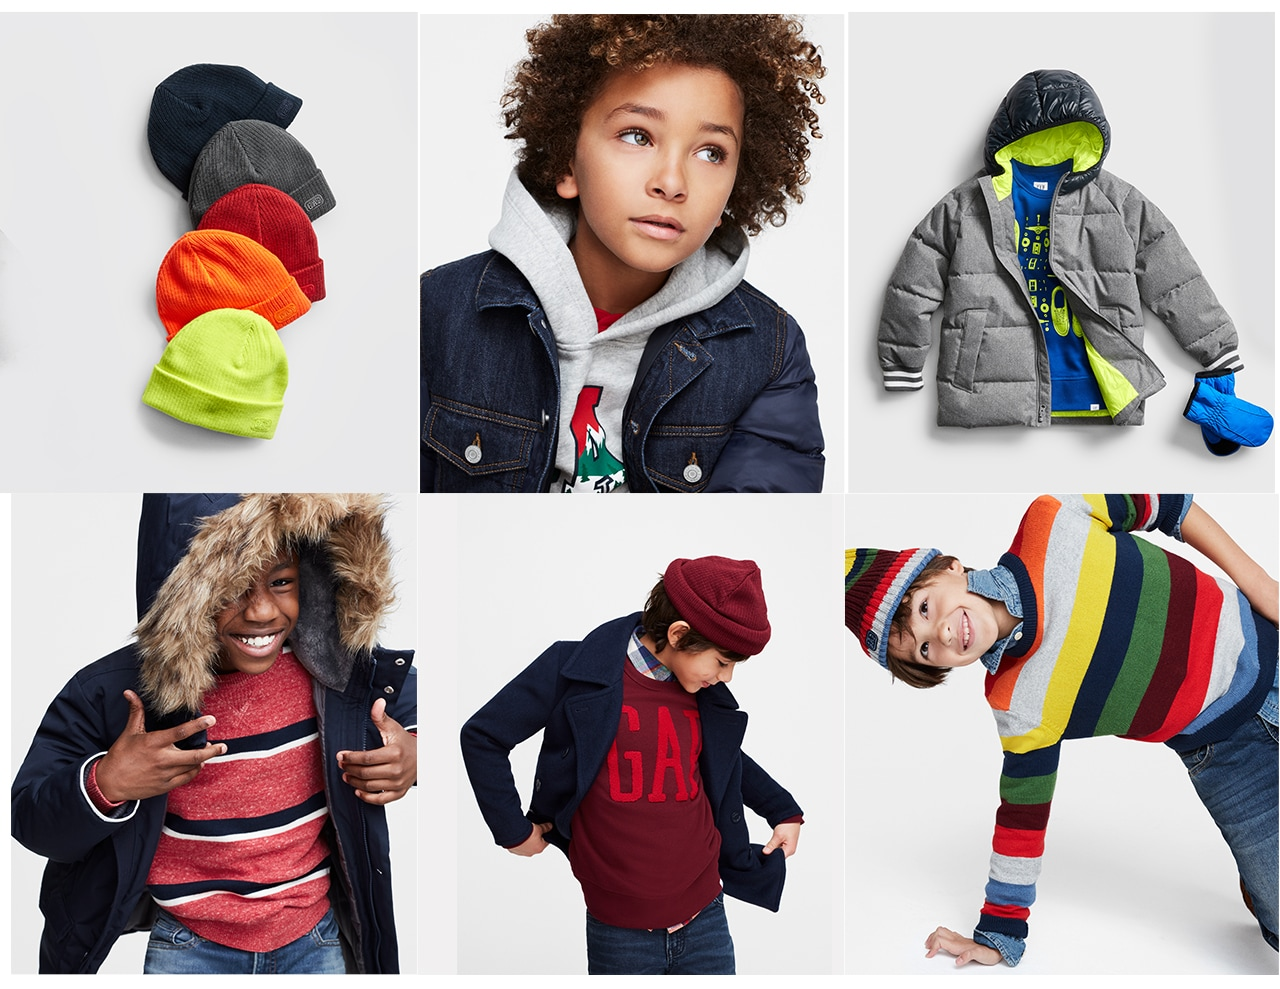 boys gift guide - boys in colorful outer wear clothing